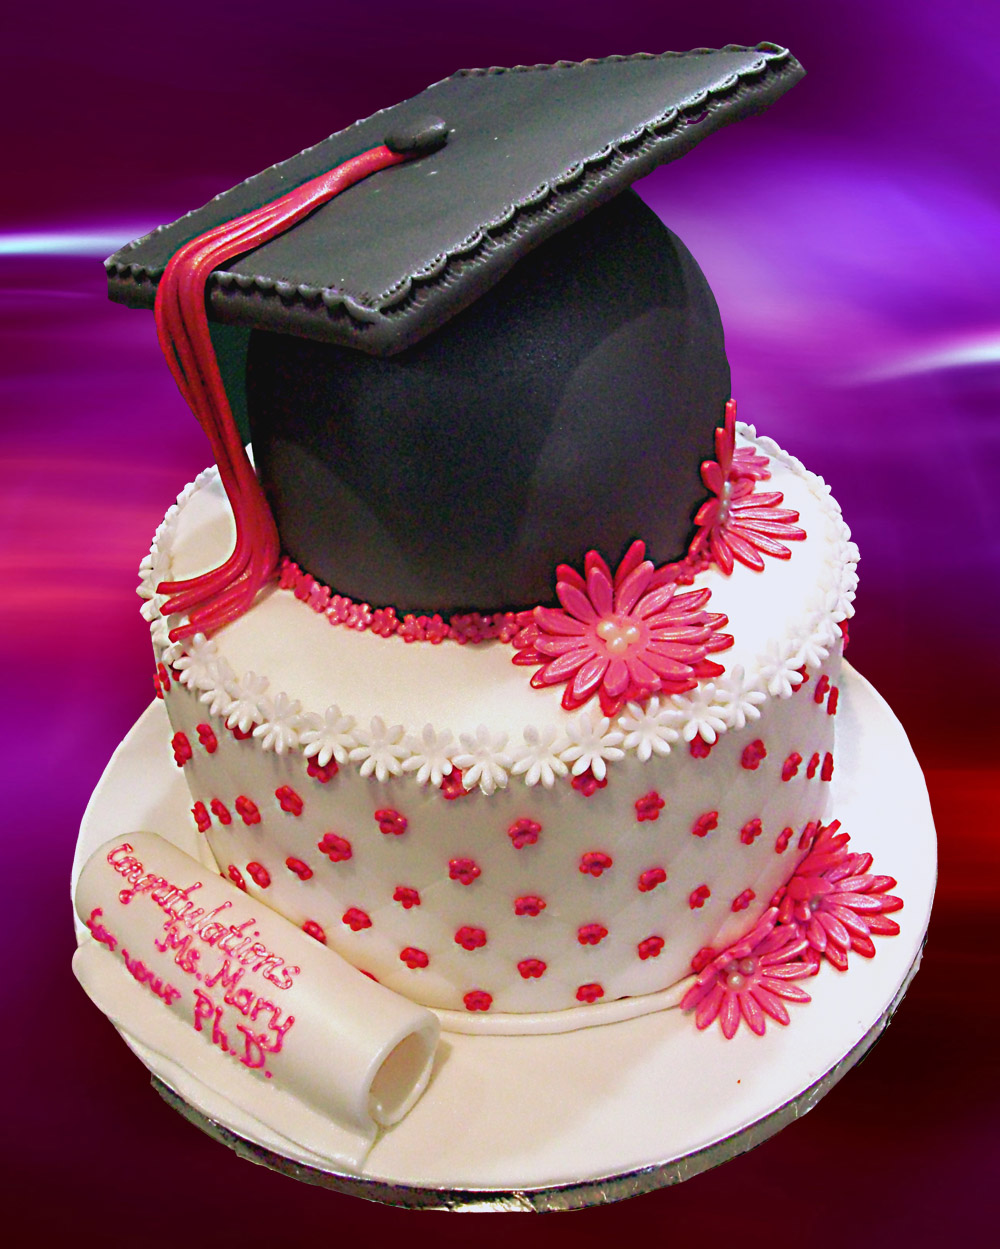 cake decoration ideas for graduation